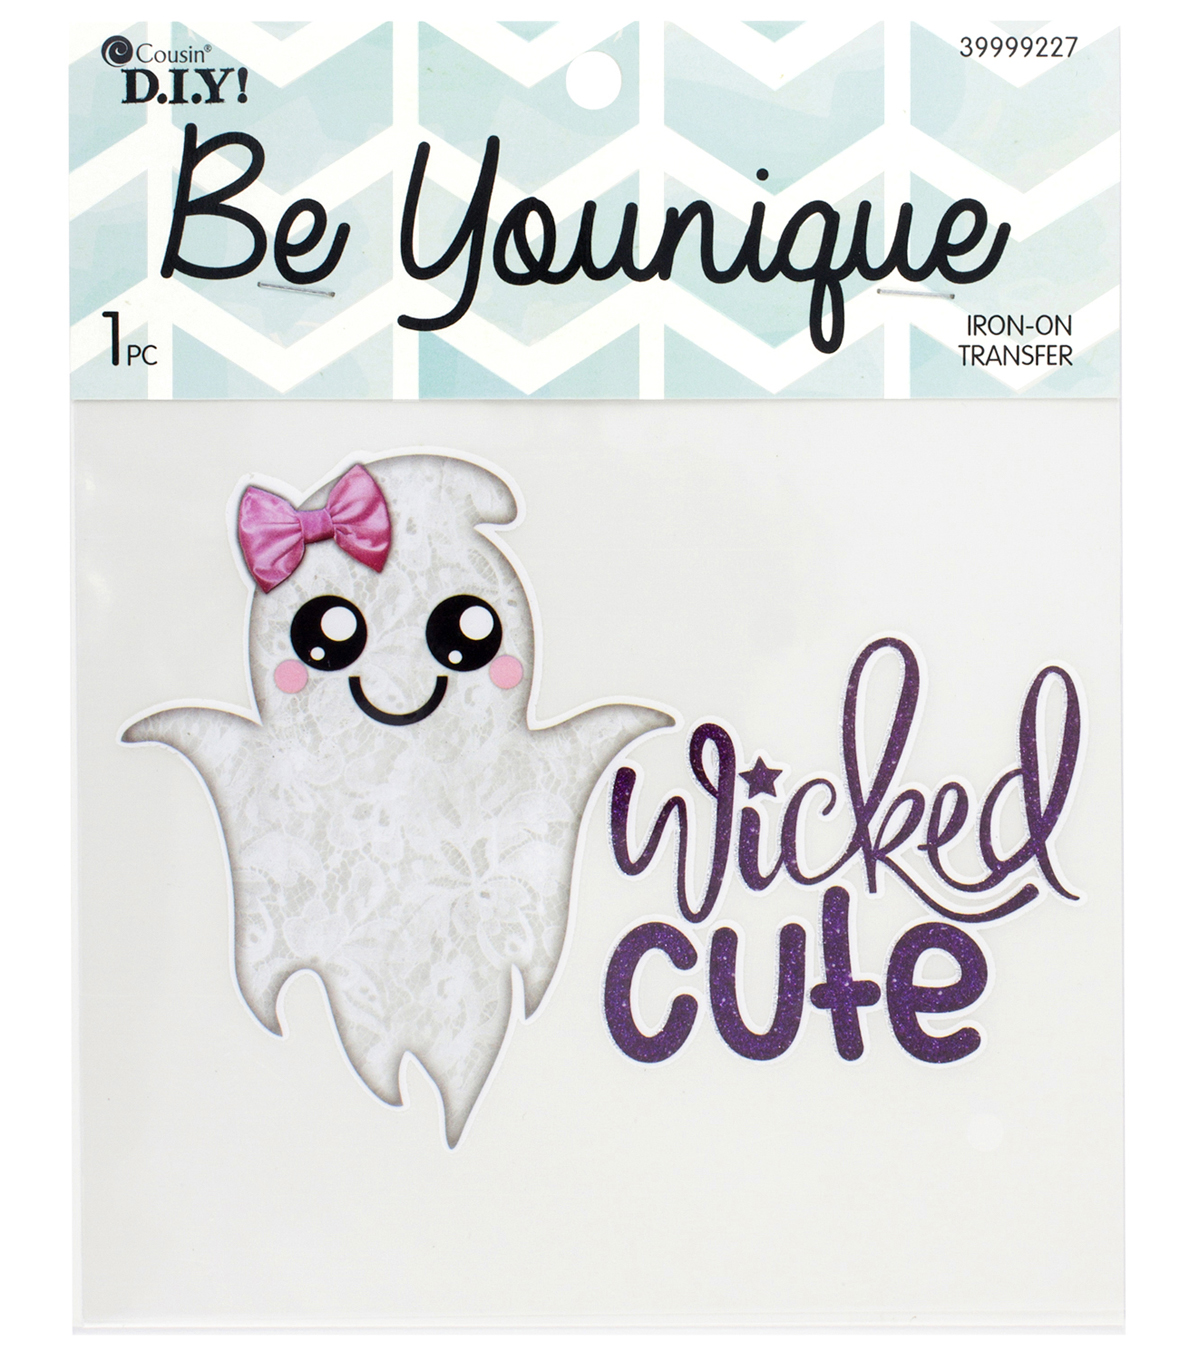 Cousin® DIY Be Younique Iron-On Transfer-Wicked Cute